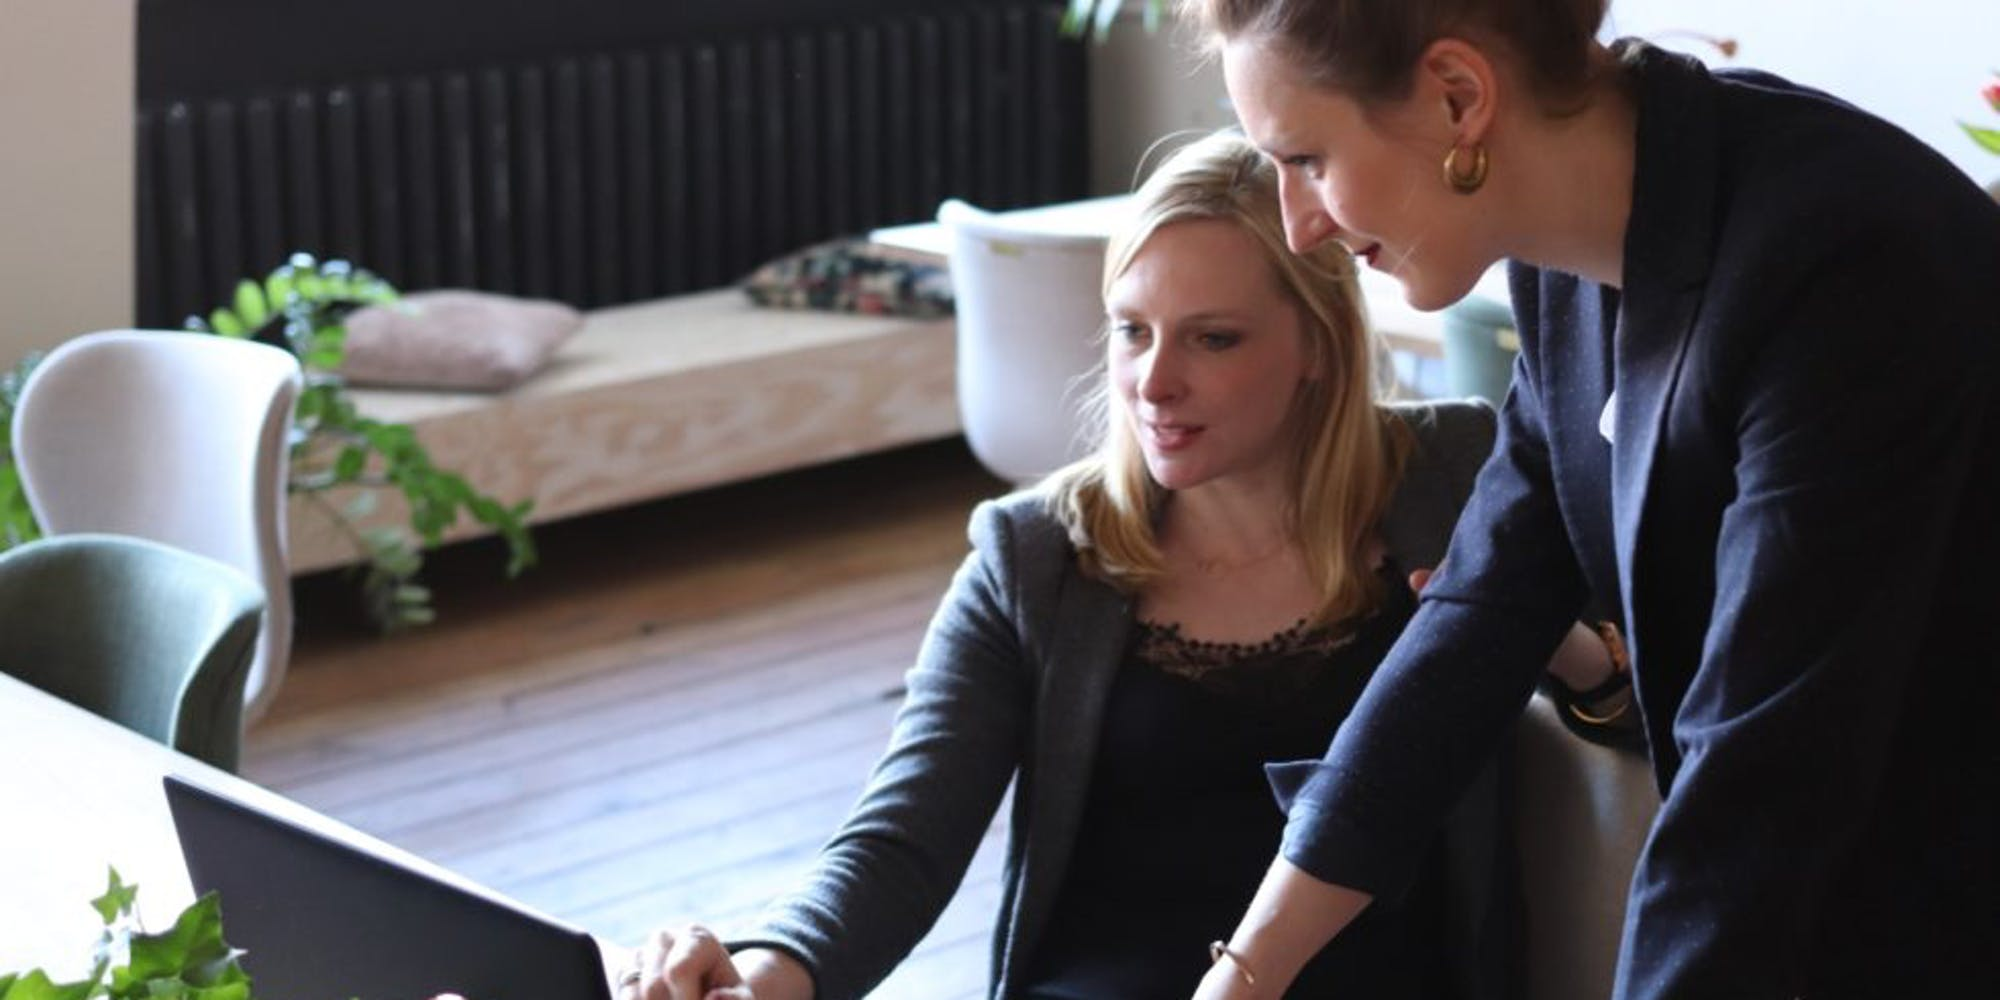 Two women looking at a laptop together discussing